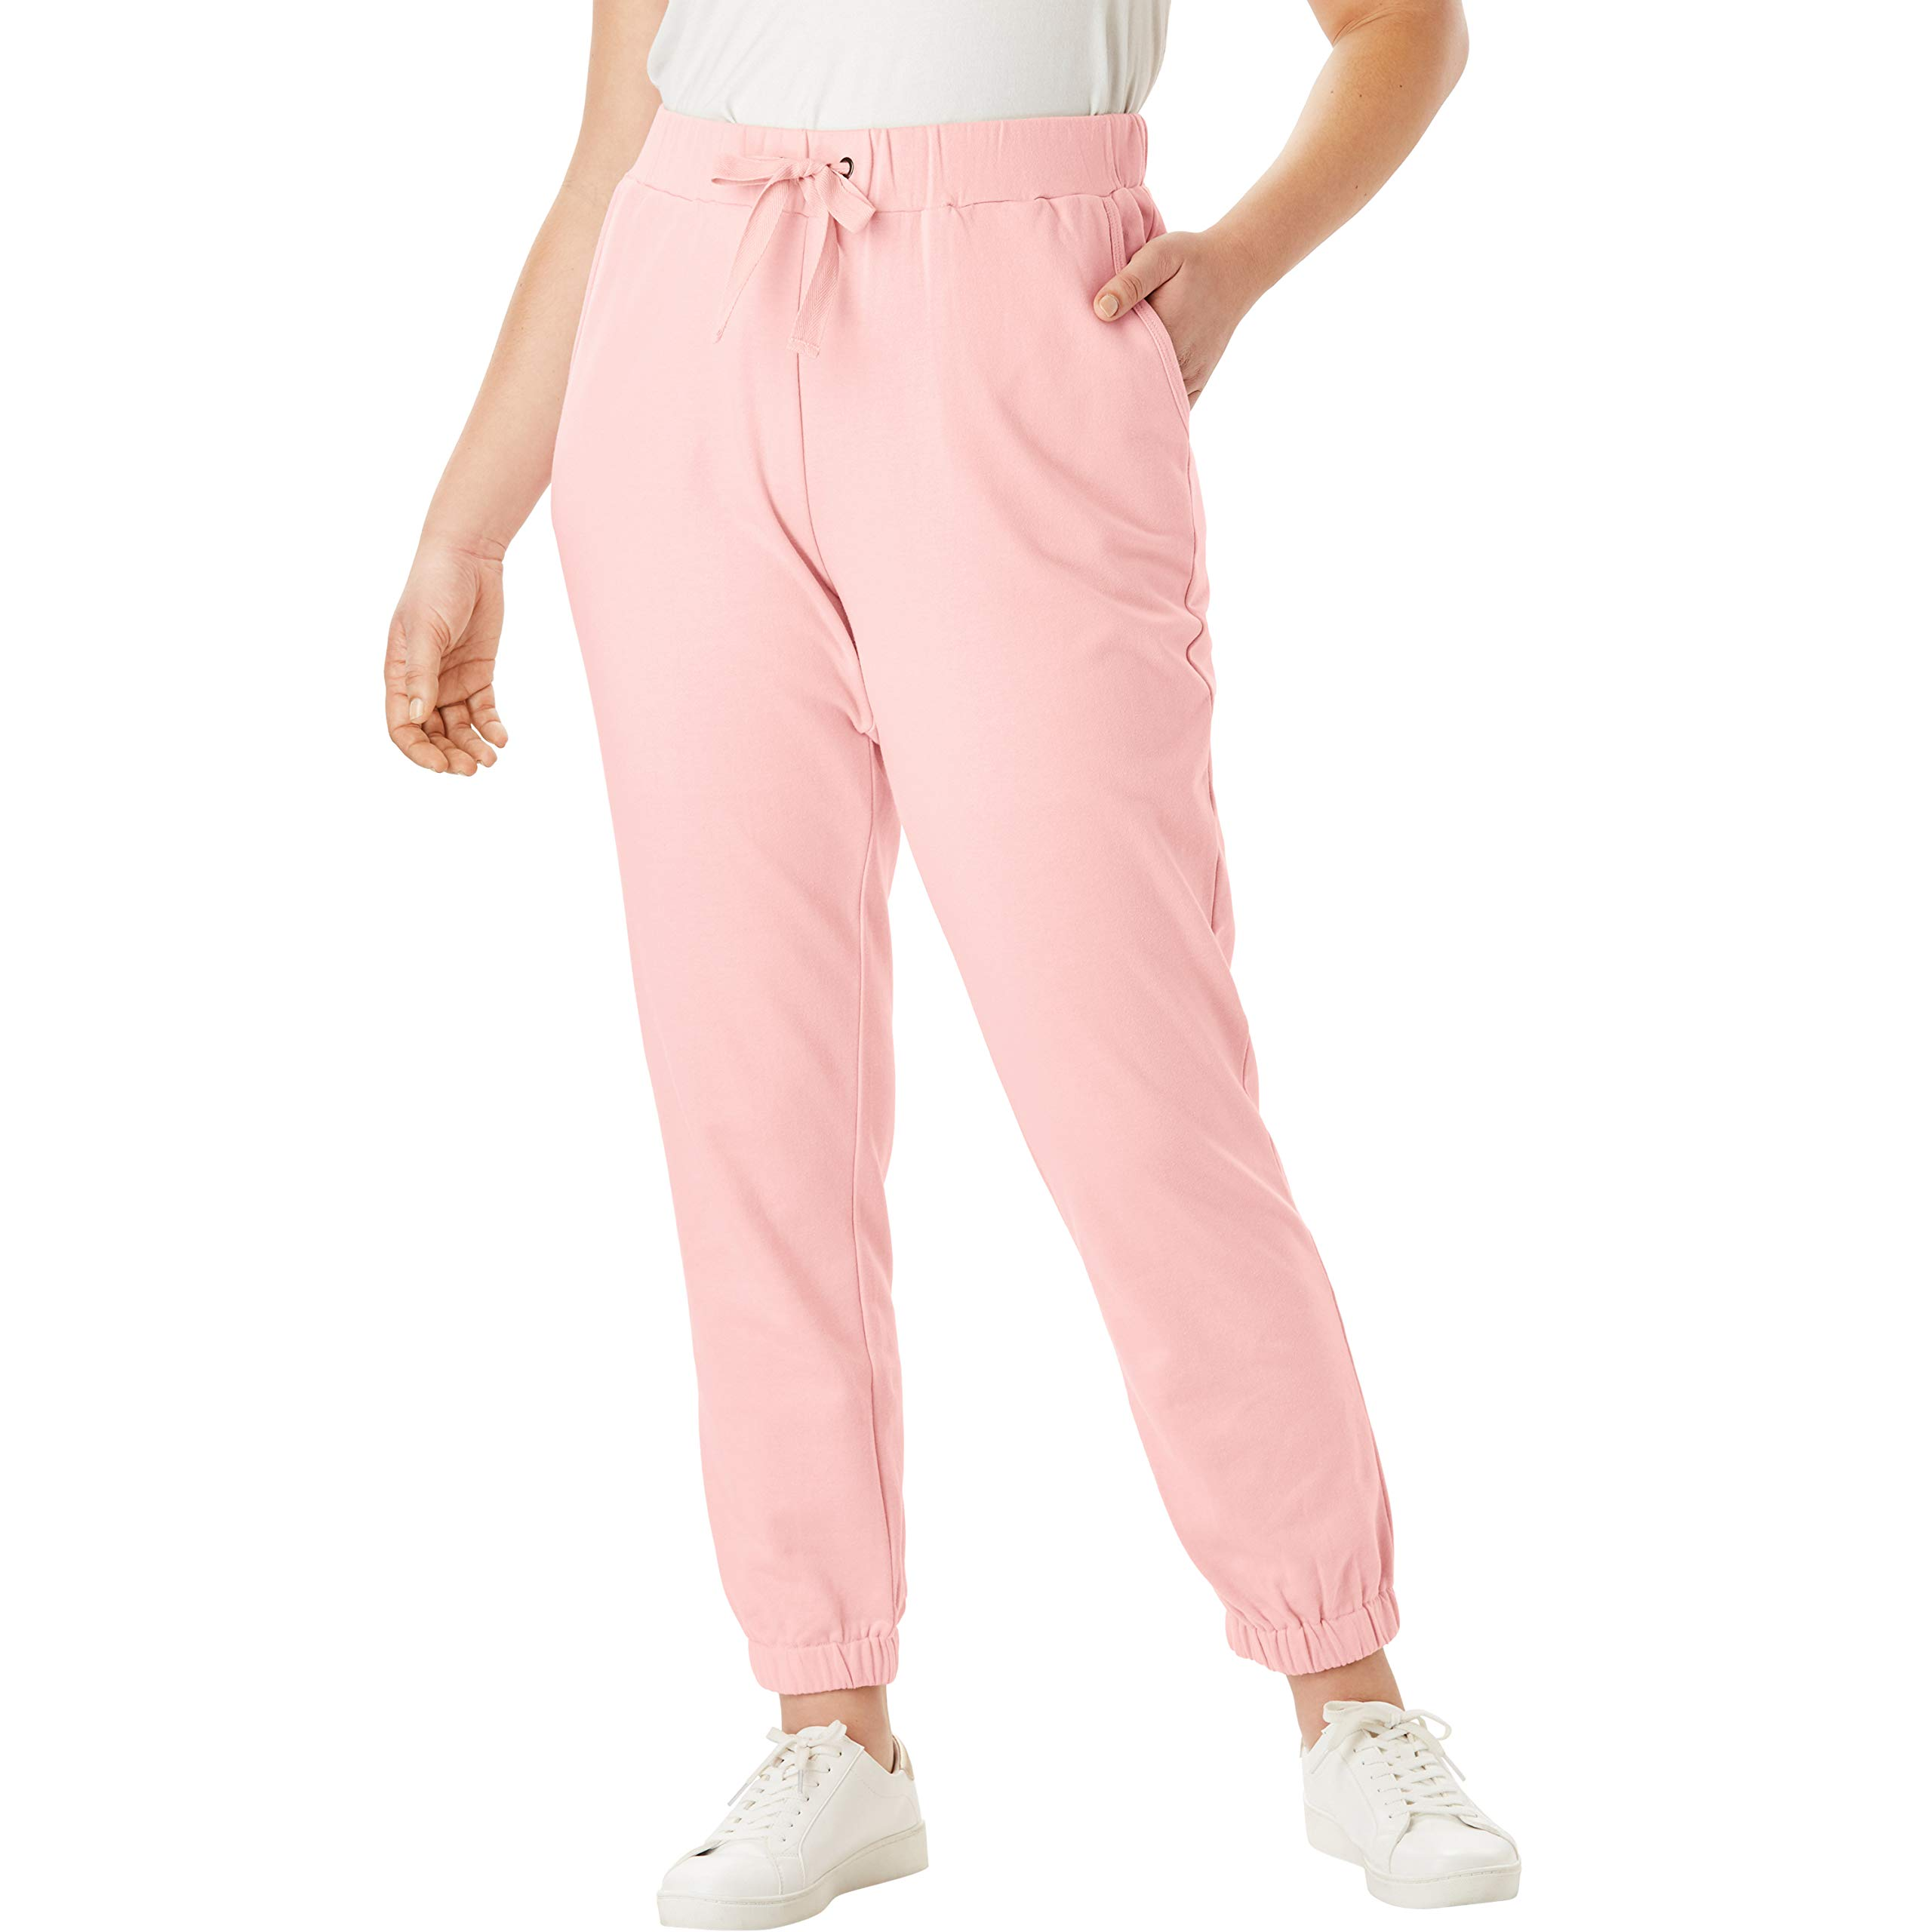 Roamans Women's Plus Size French Terry Jogger - Soft Blush, 34/36 by Roamans